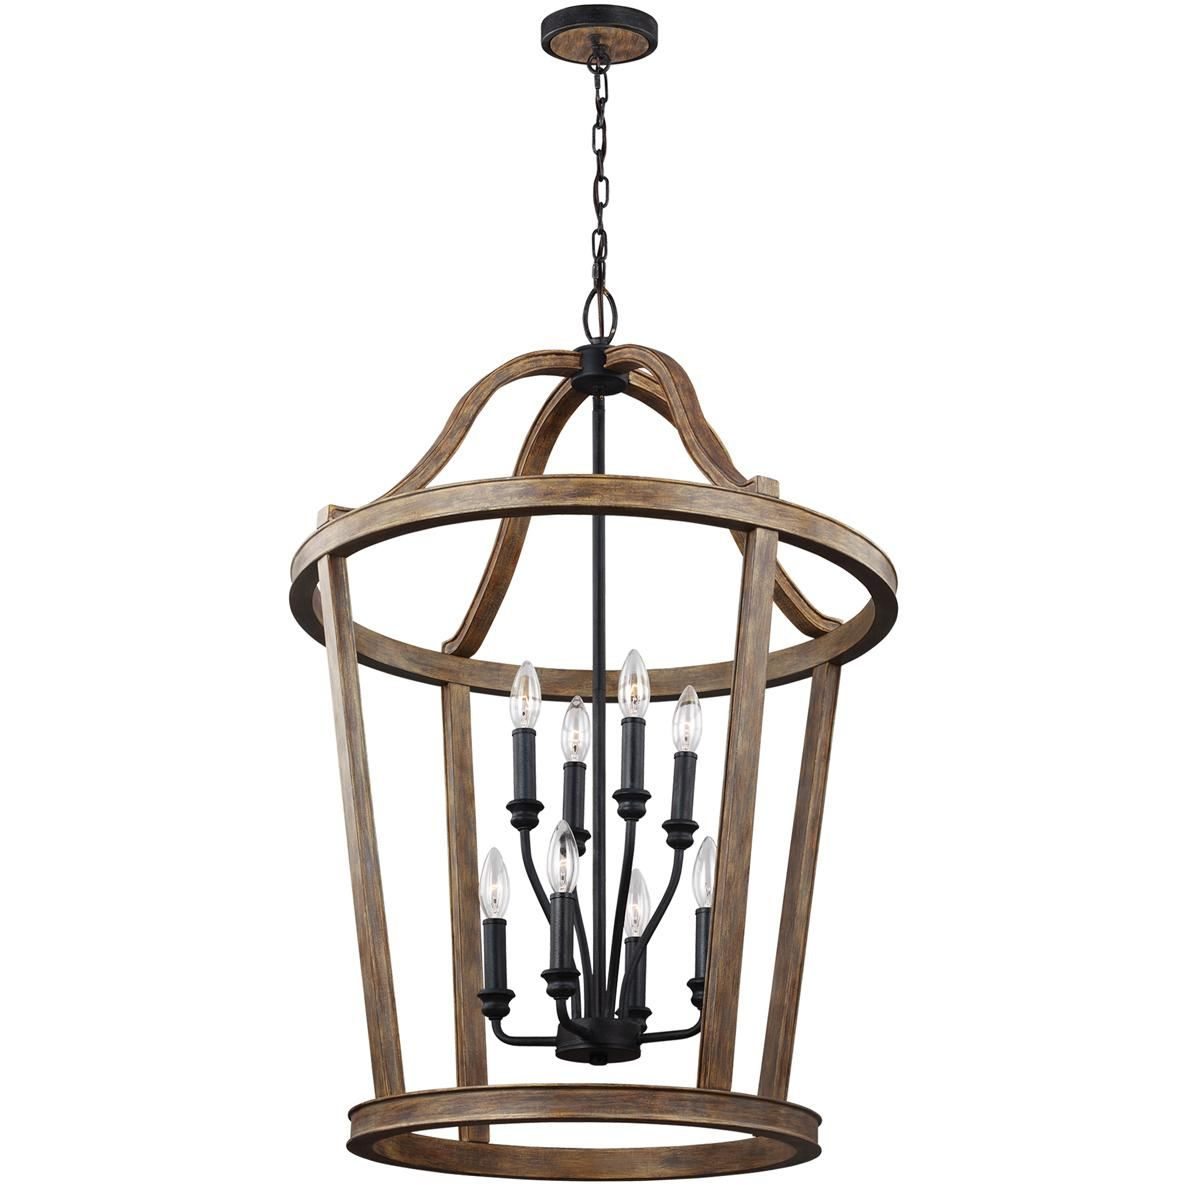 small lights furniture rustic chandeliers in outdoor chandelier trendy crystal popular hanging light large lighting